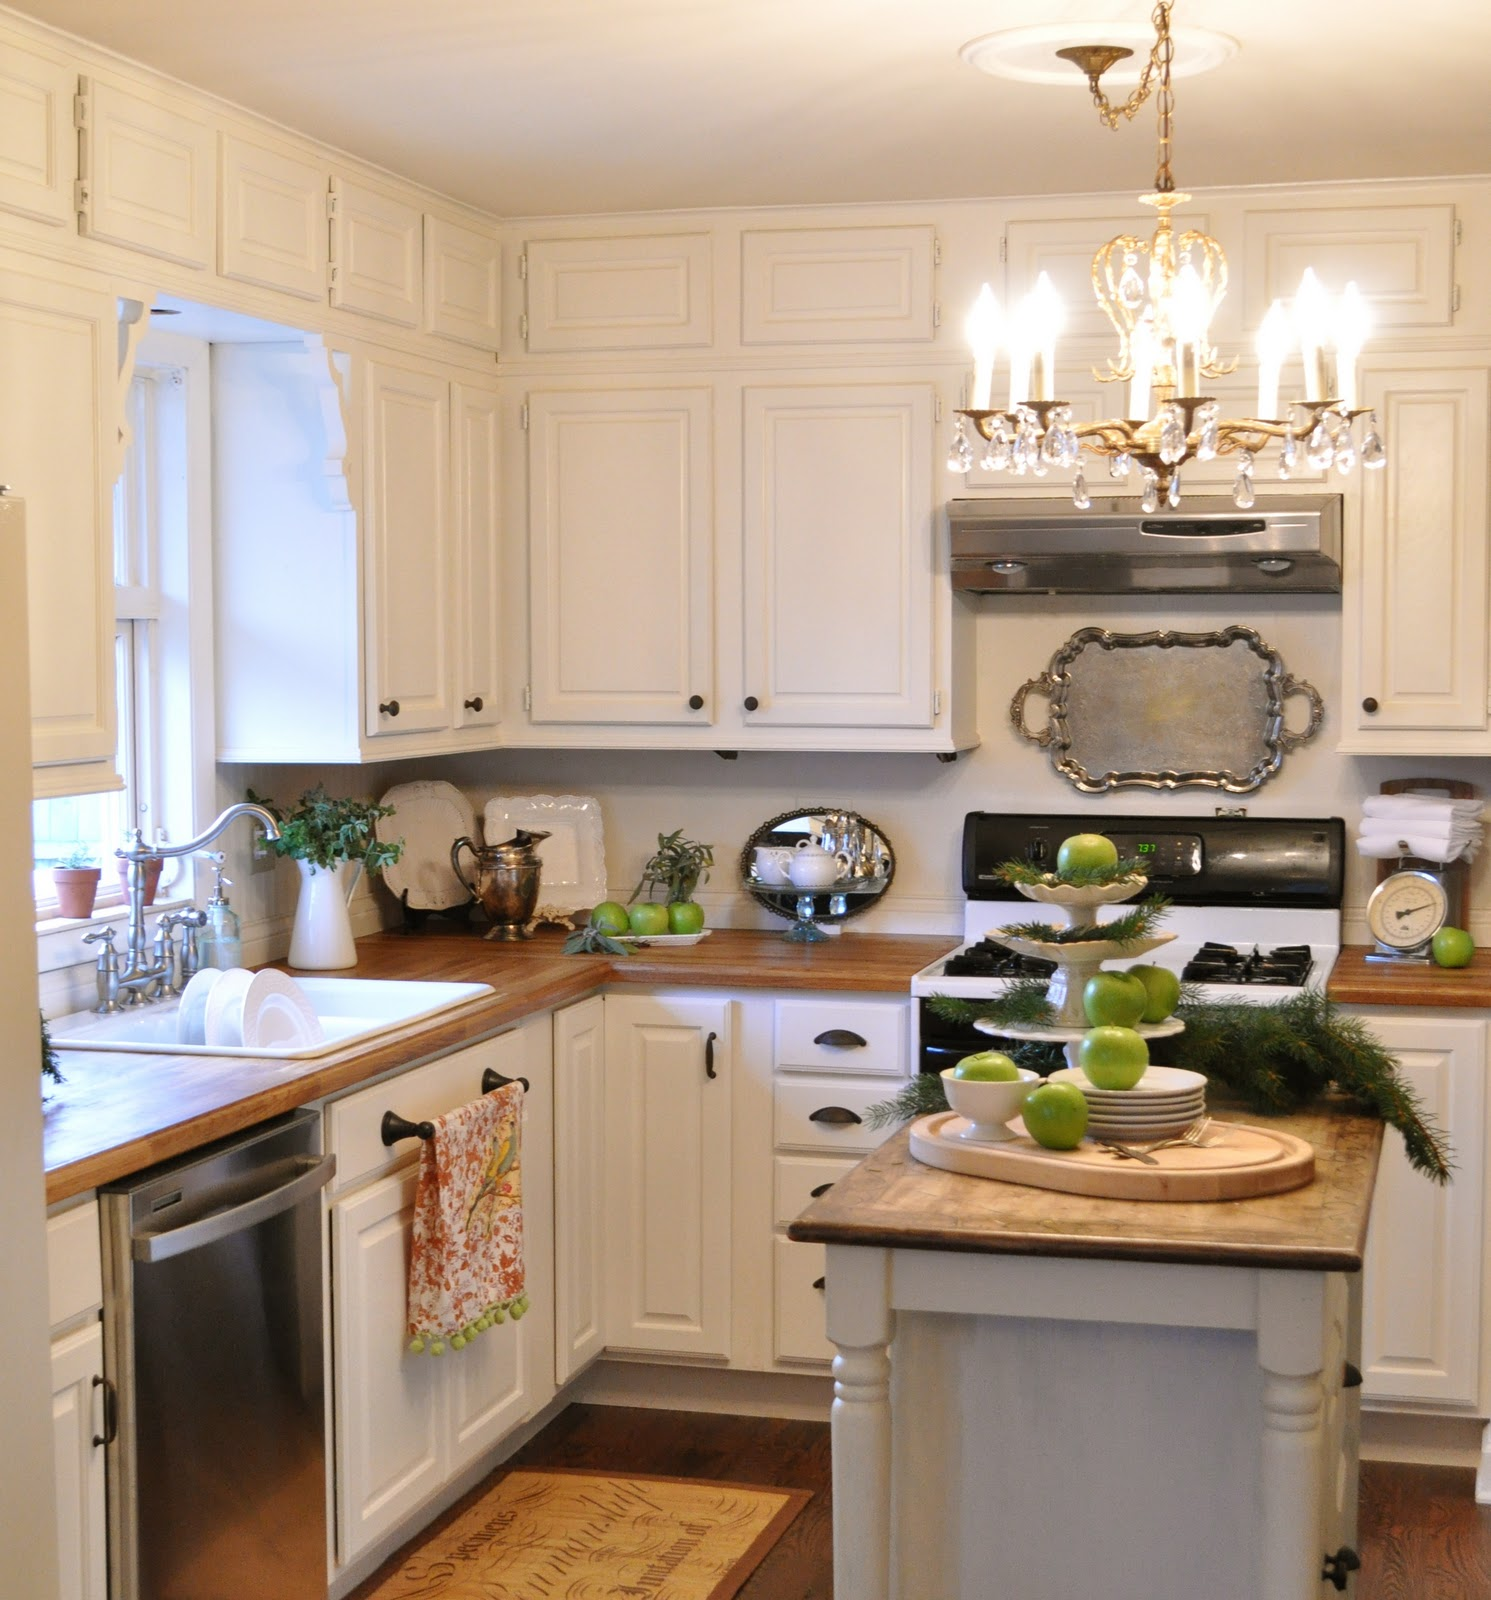 My plete kitchen remodel story for about $12 000 Jennifer